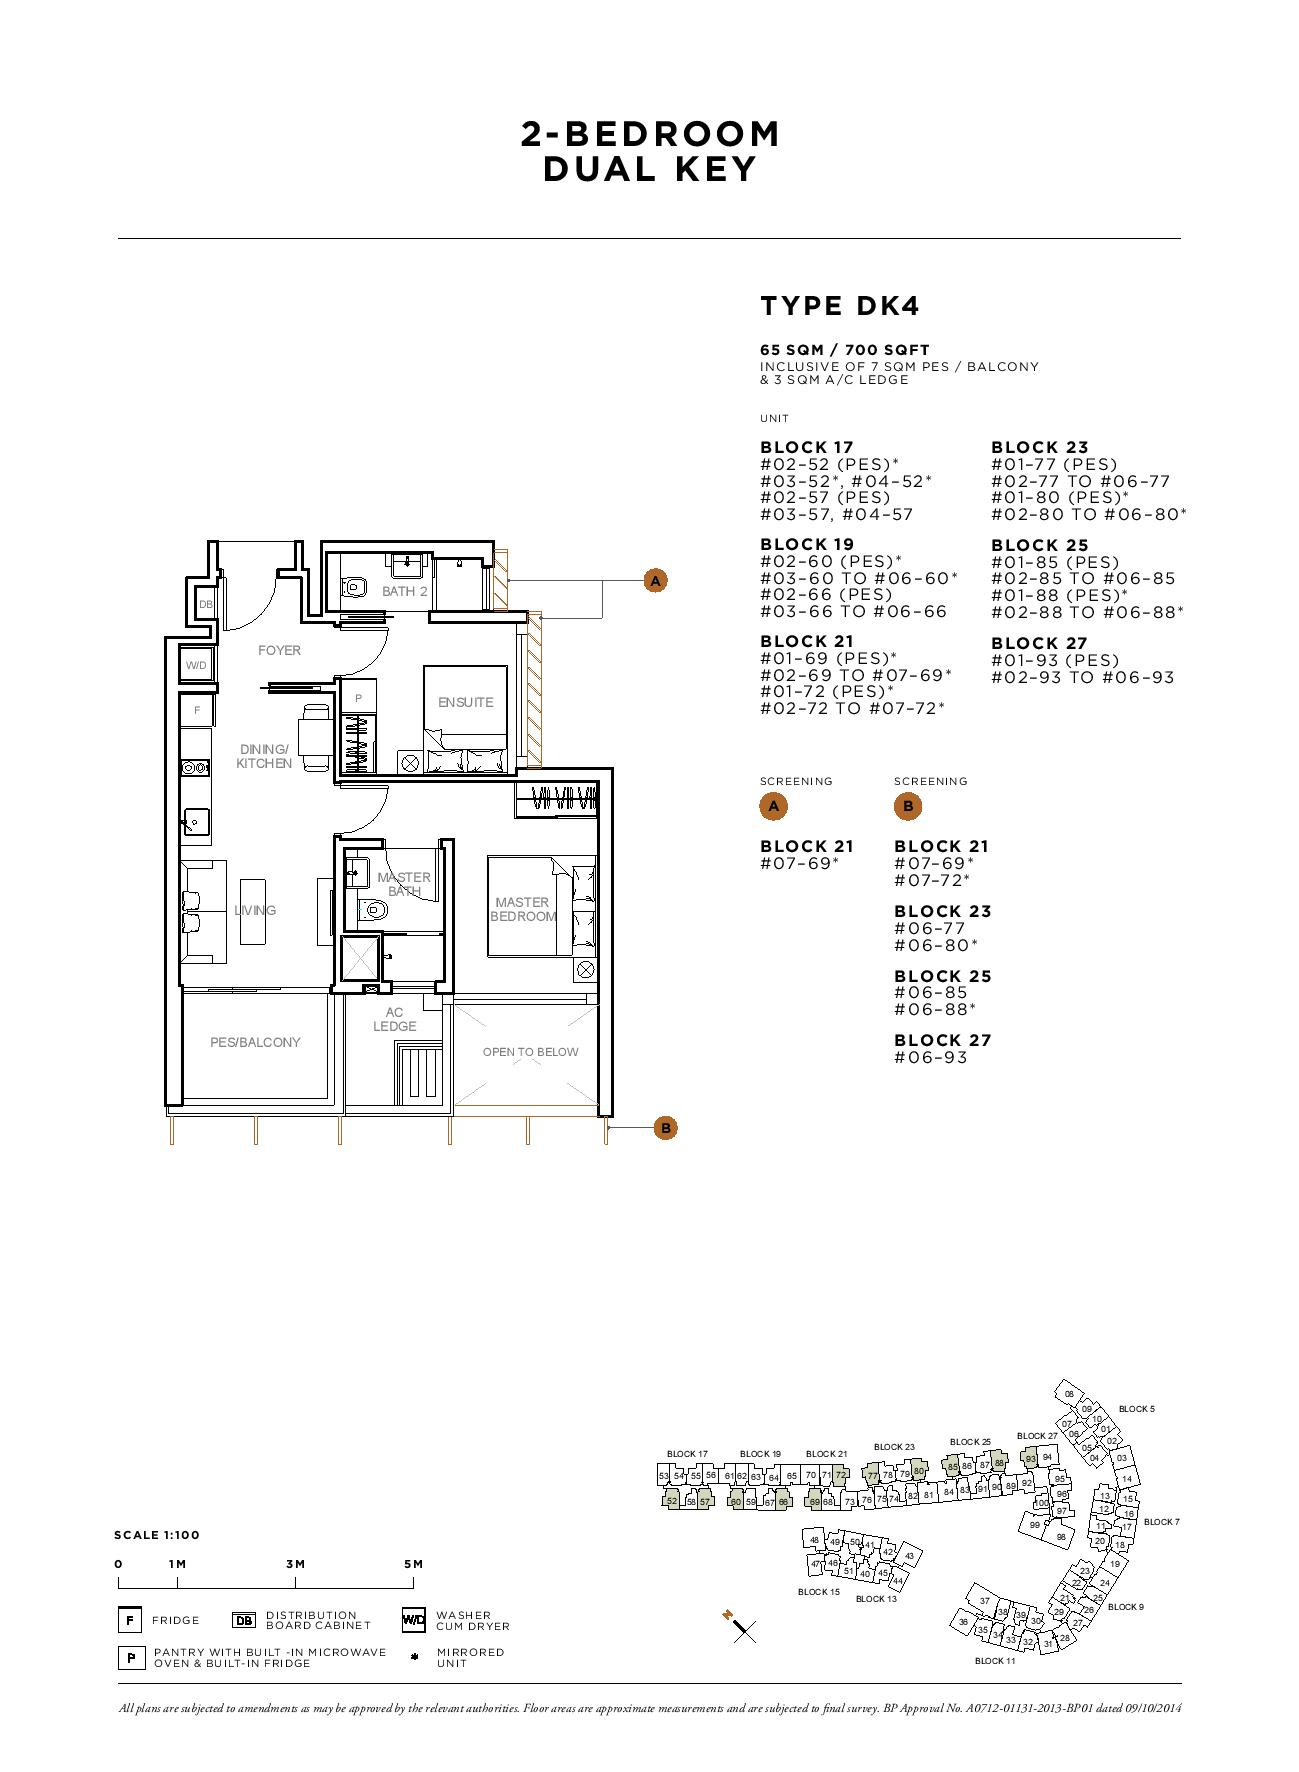 Sophia Hills 2 Bedroom Dual Key Type DK4 Floor Plans